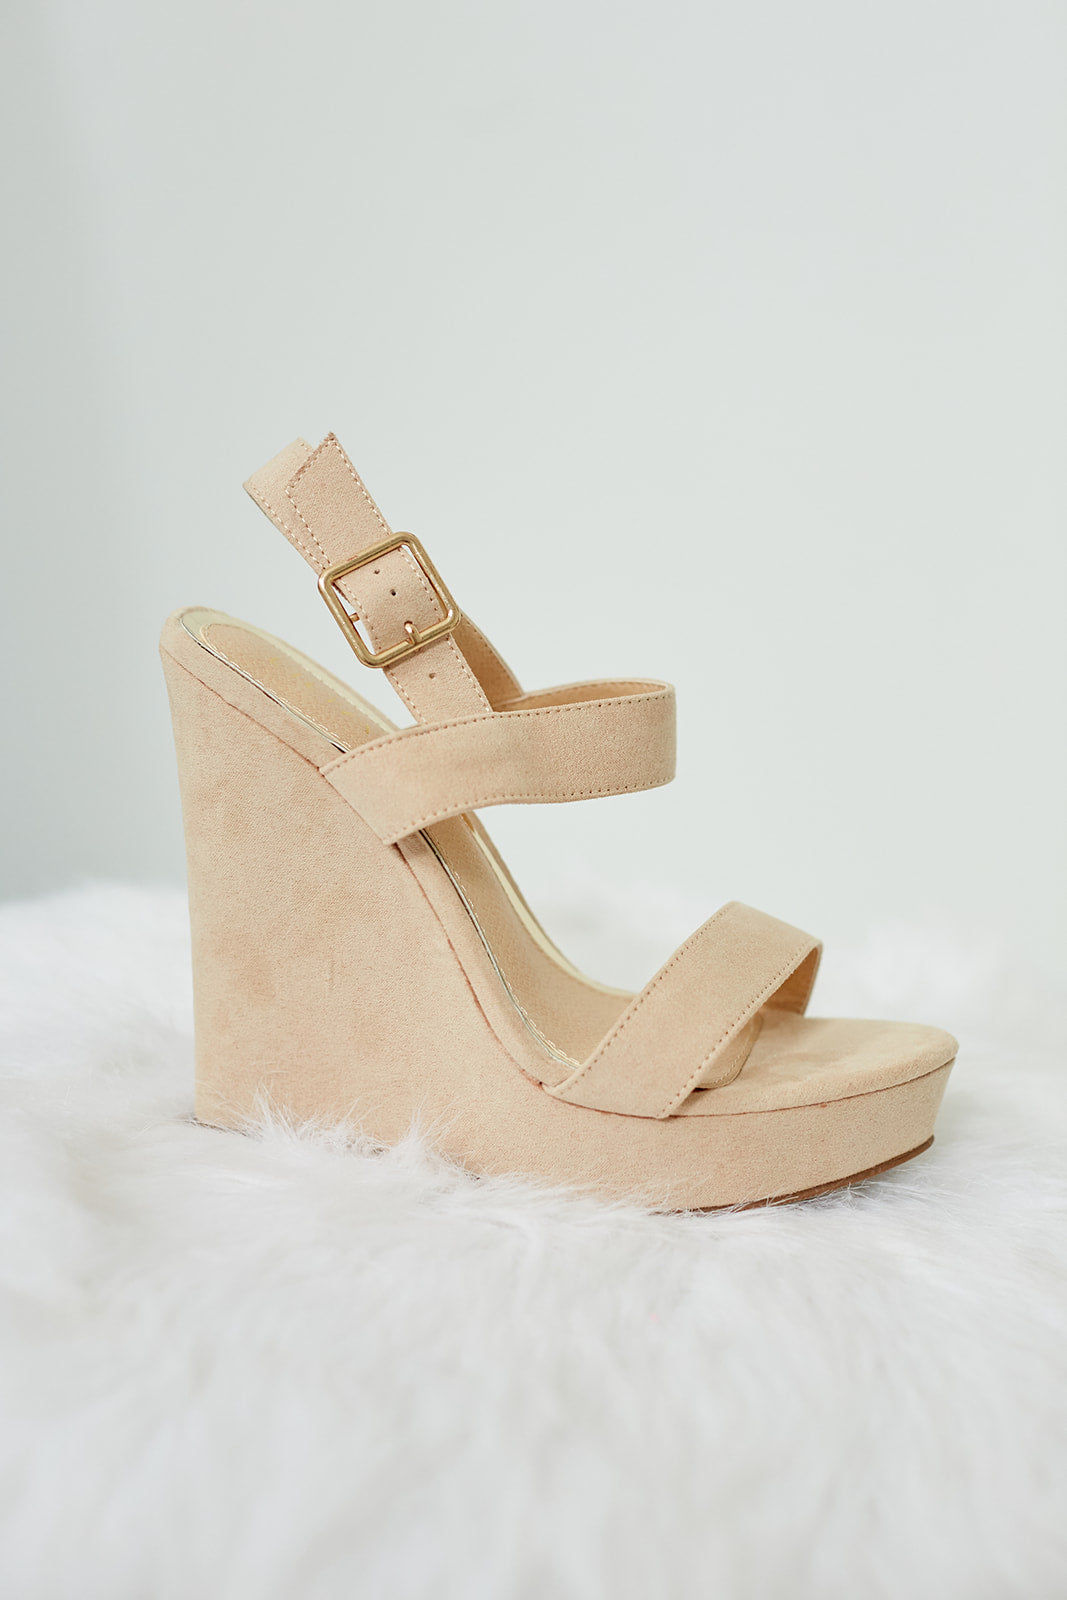 fab'rik - DERBY WEDGES ProductImage-4619287986234